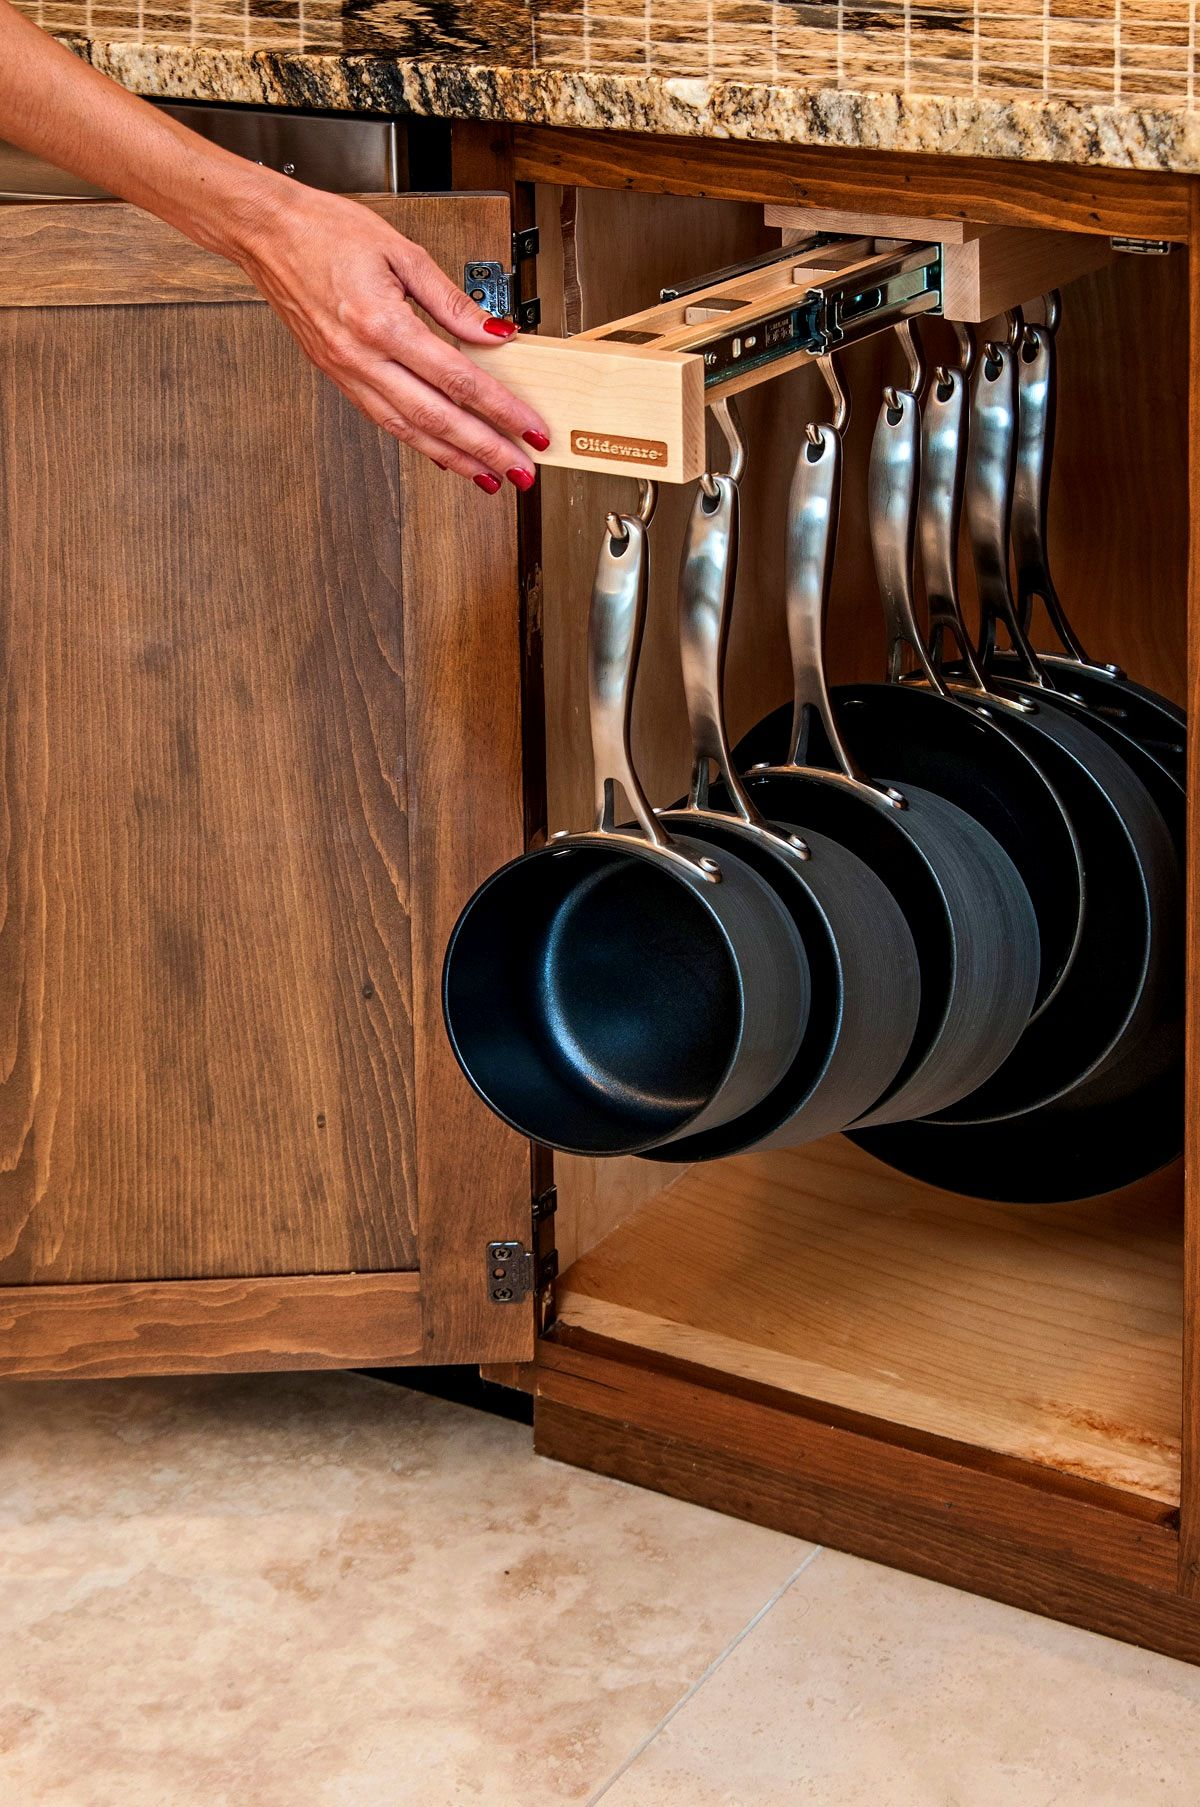 com dp rack pot amazon pans wooden pots kzhl and bowls mounted standard cooks for wall kitchen racks by inch